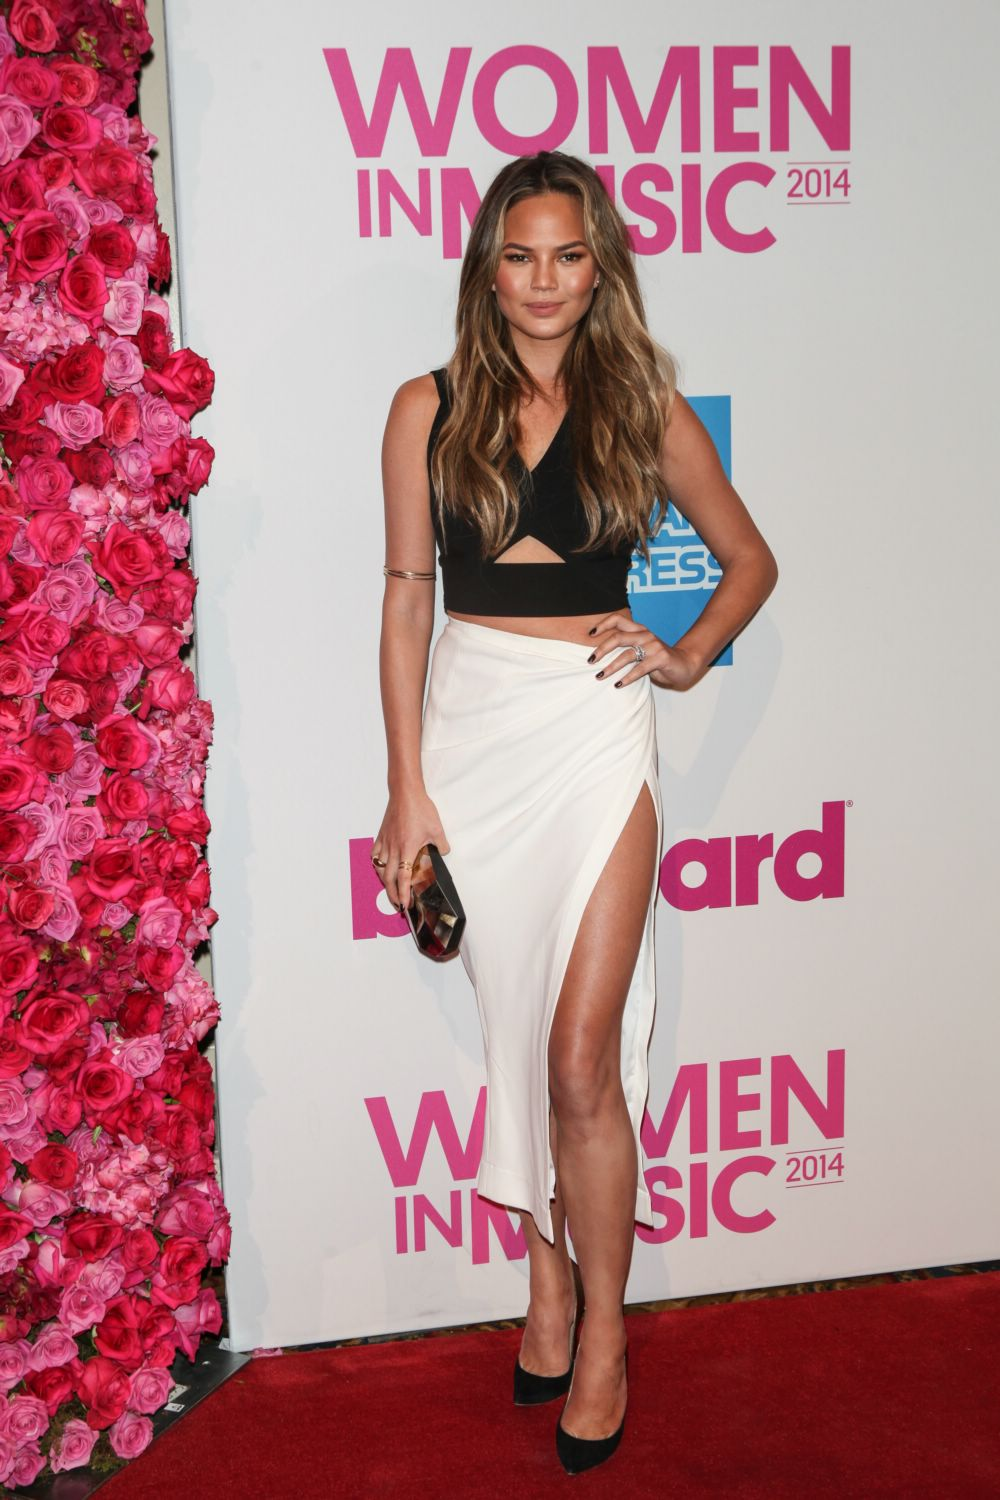 Chrissy-teigen-billboard-women-in-music-luncheon.jpg